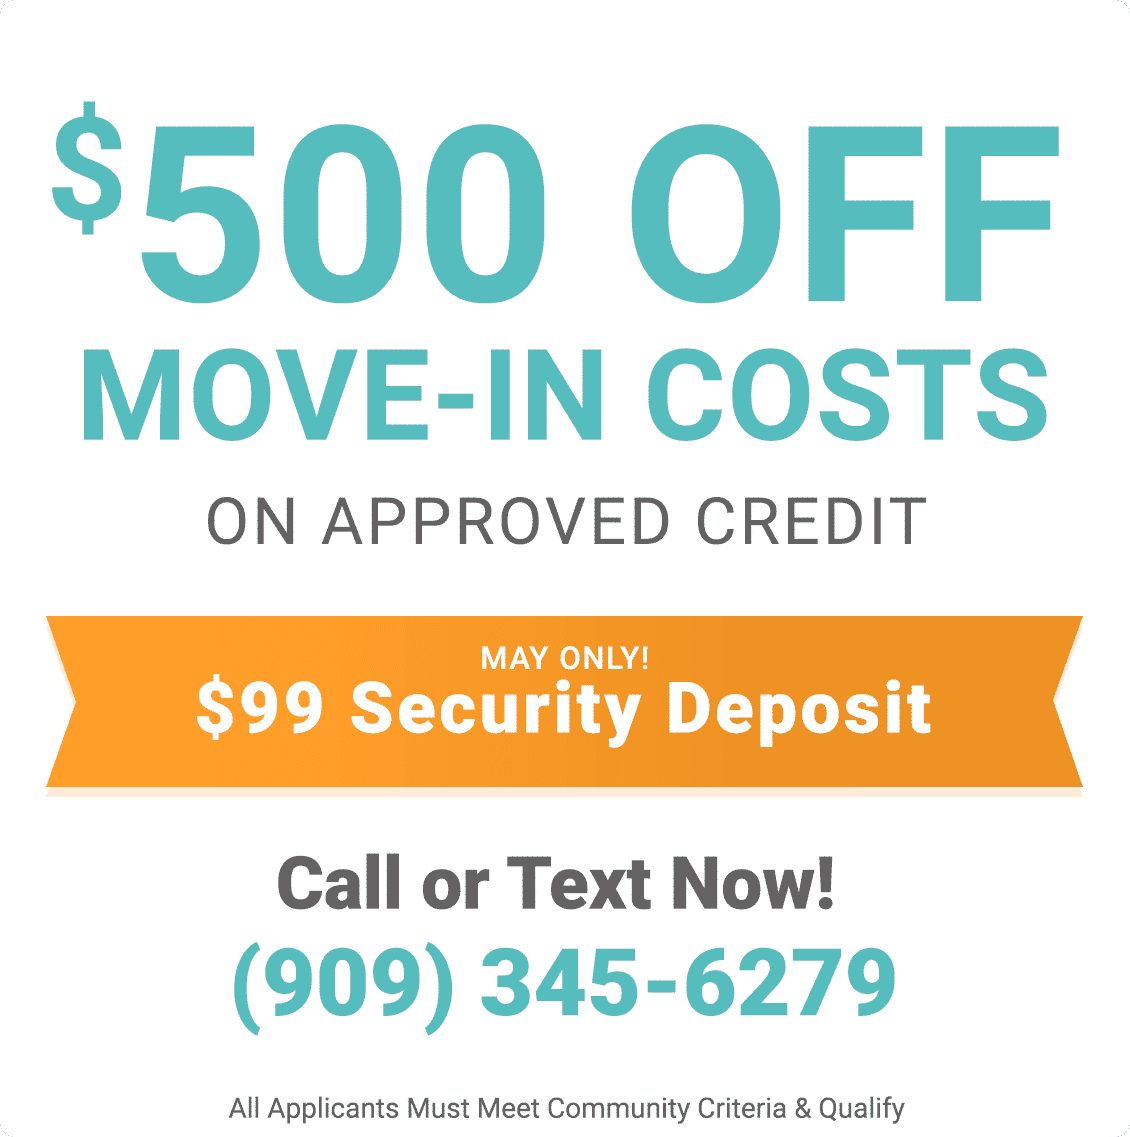 $500 off move-in. $99 security deposit only during May